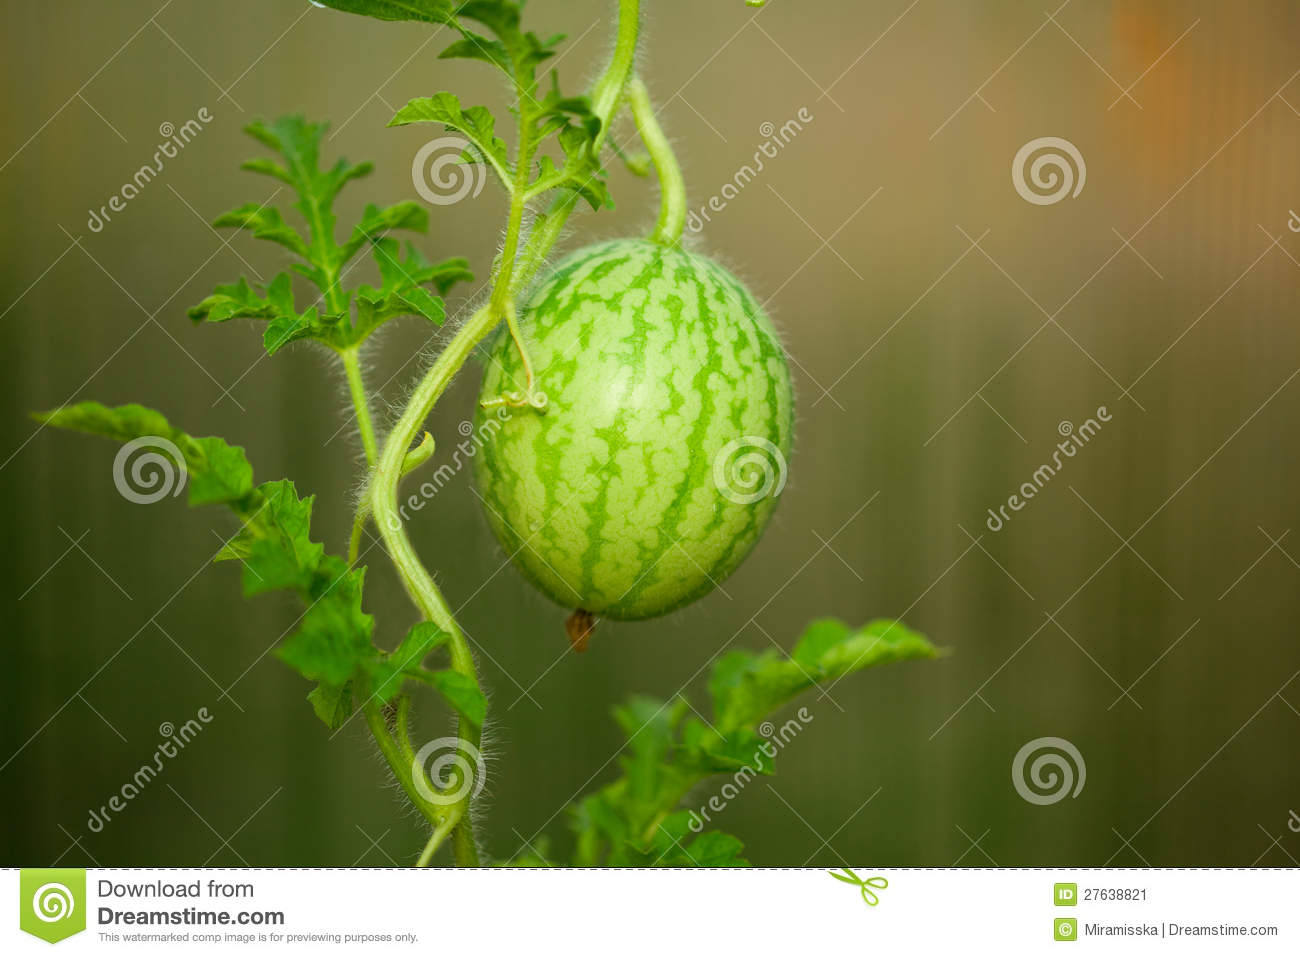 Small Watermelon Stock Image - Image: 27638821